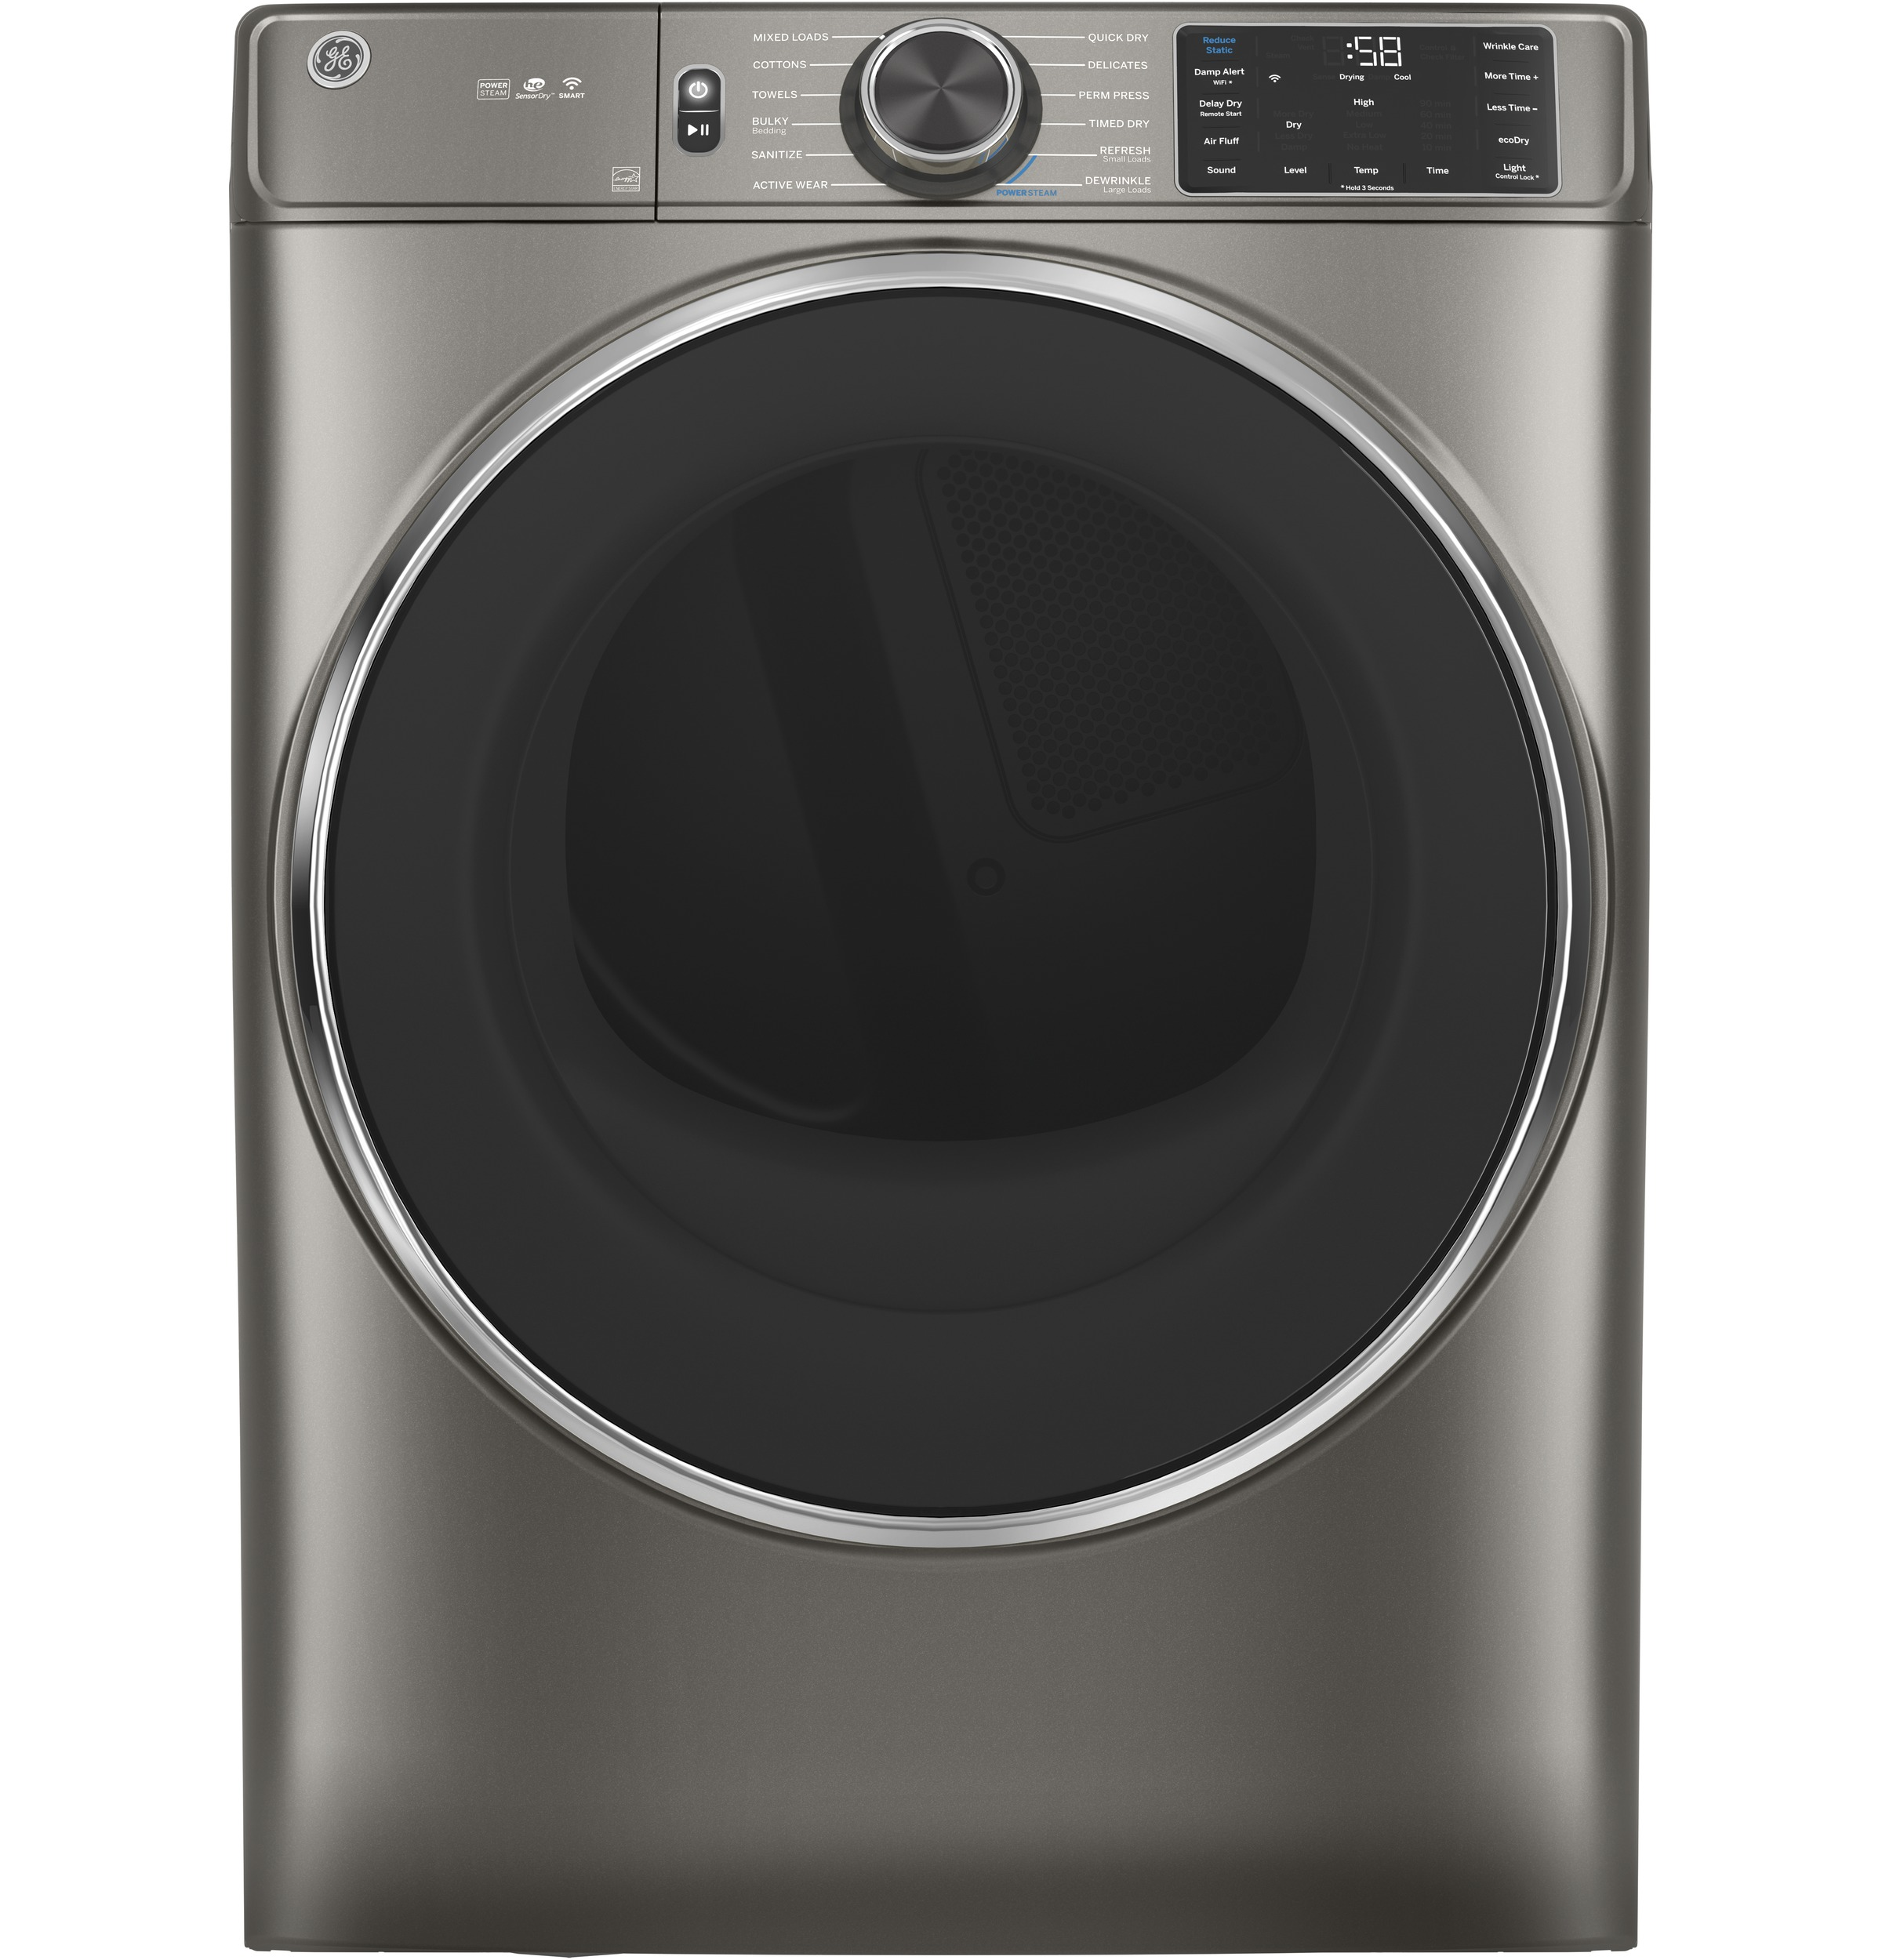 Model: GFD65ESPNSN | GE GE® 7.8 cu. ft. Capacity Smart Front Load Electric Dryer with Steam and Sanitize Cycle